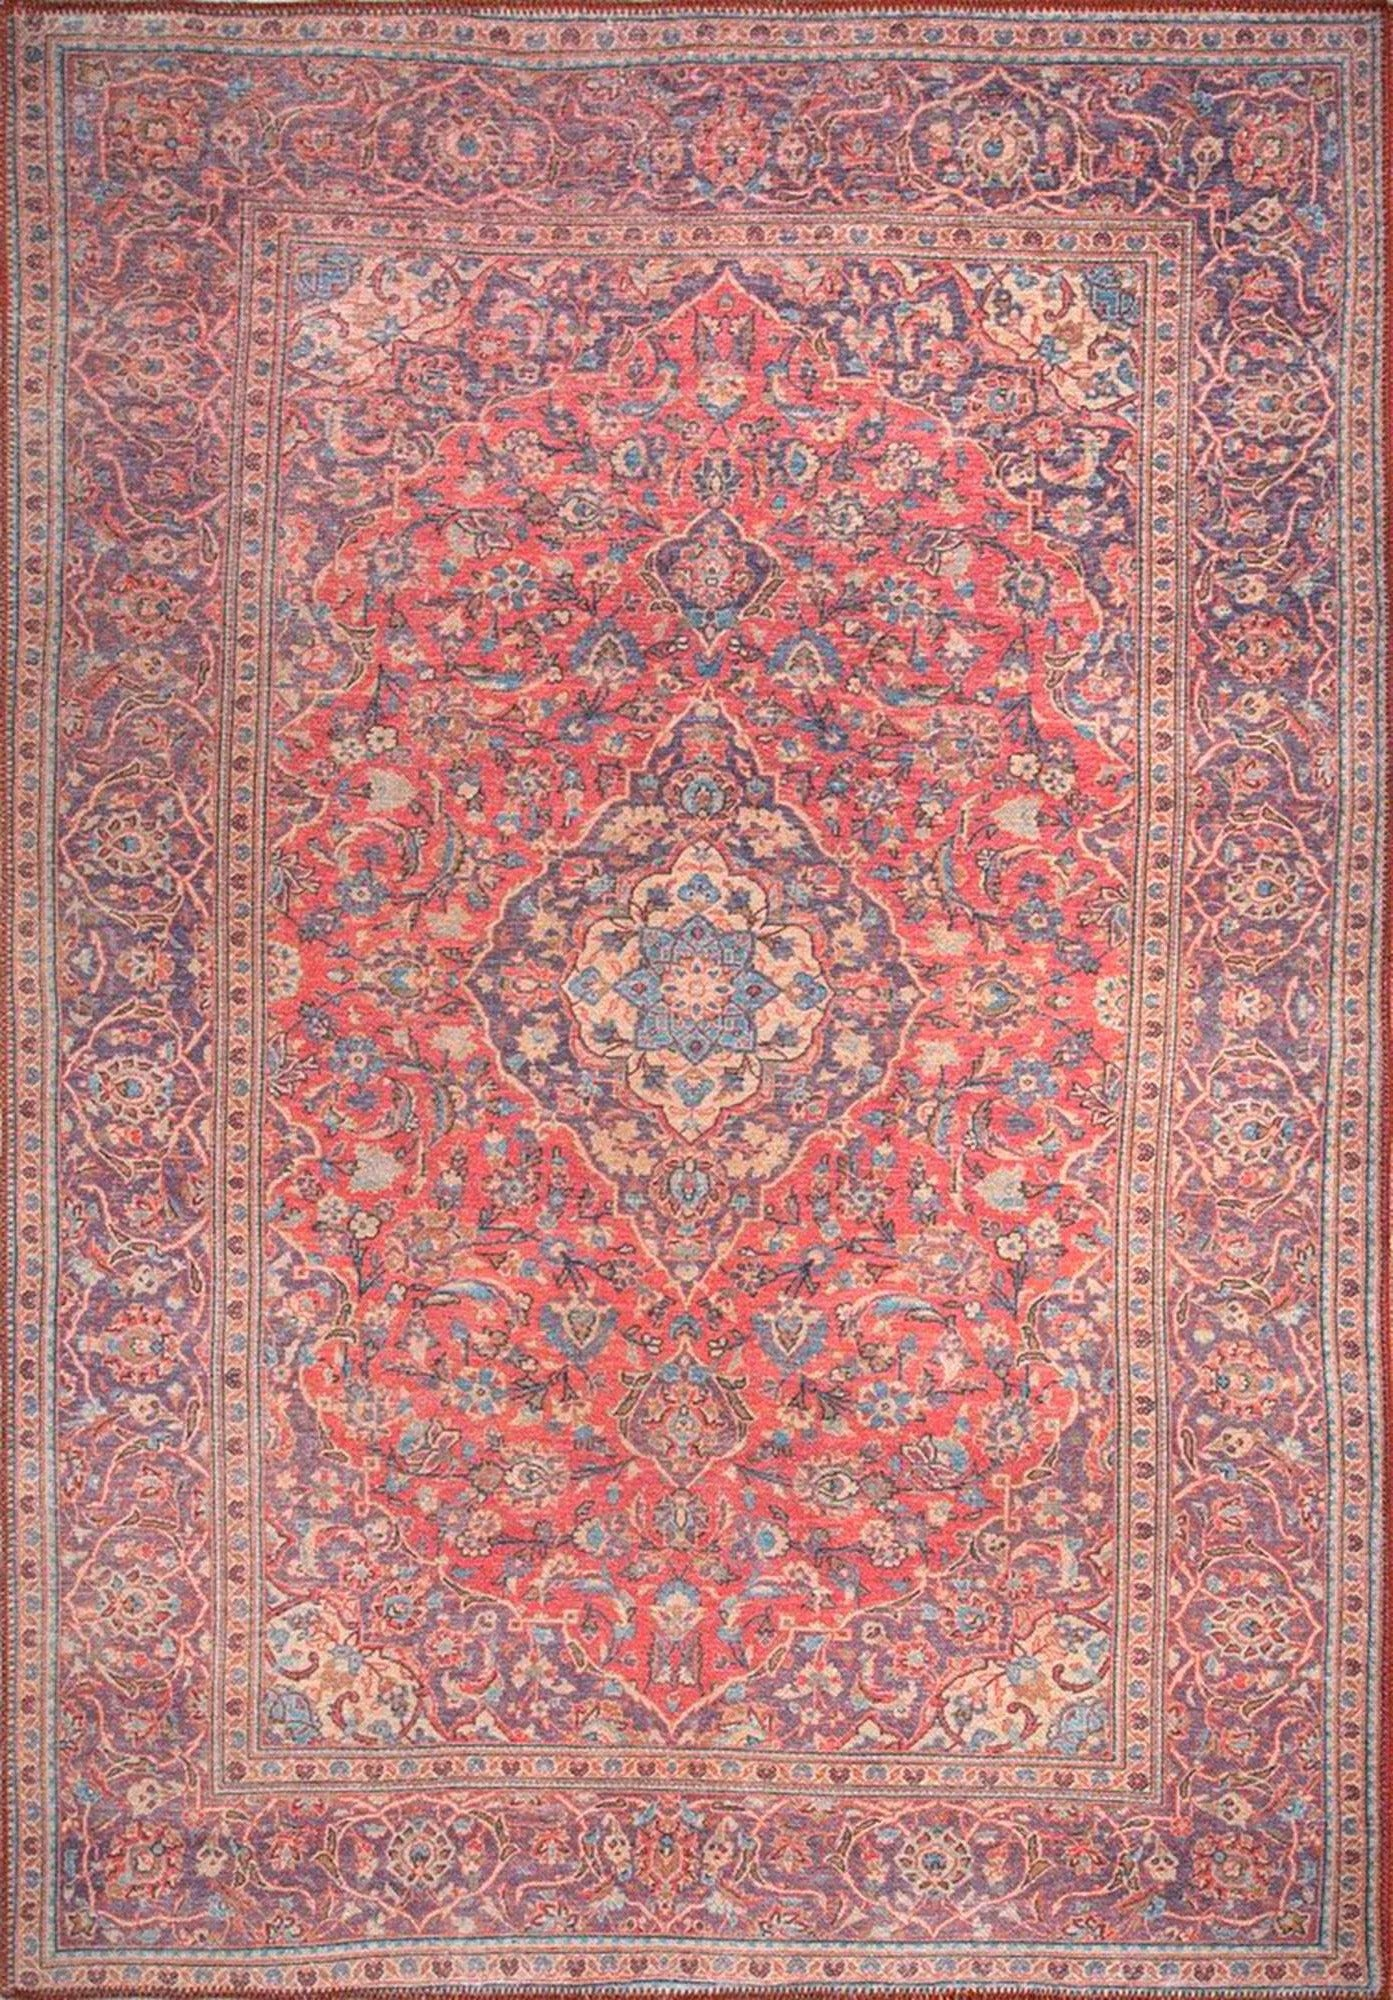 SURA | Oriental Rug, Persian Pattern, Vintage Handmade looks, Bohemian, Home decor, Floral Medallion, Bordered, Unique Red Carpet, Fame Rugs